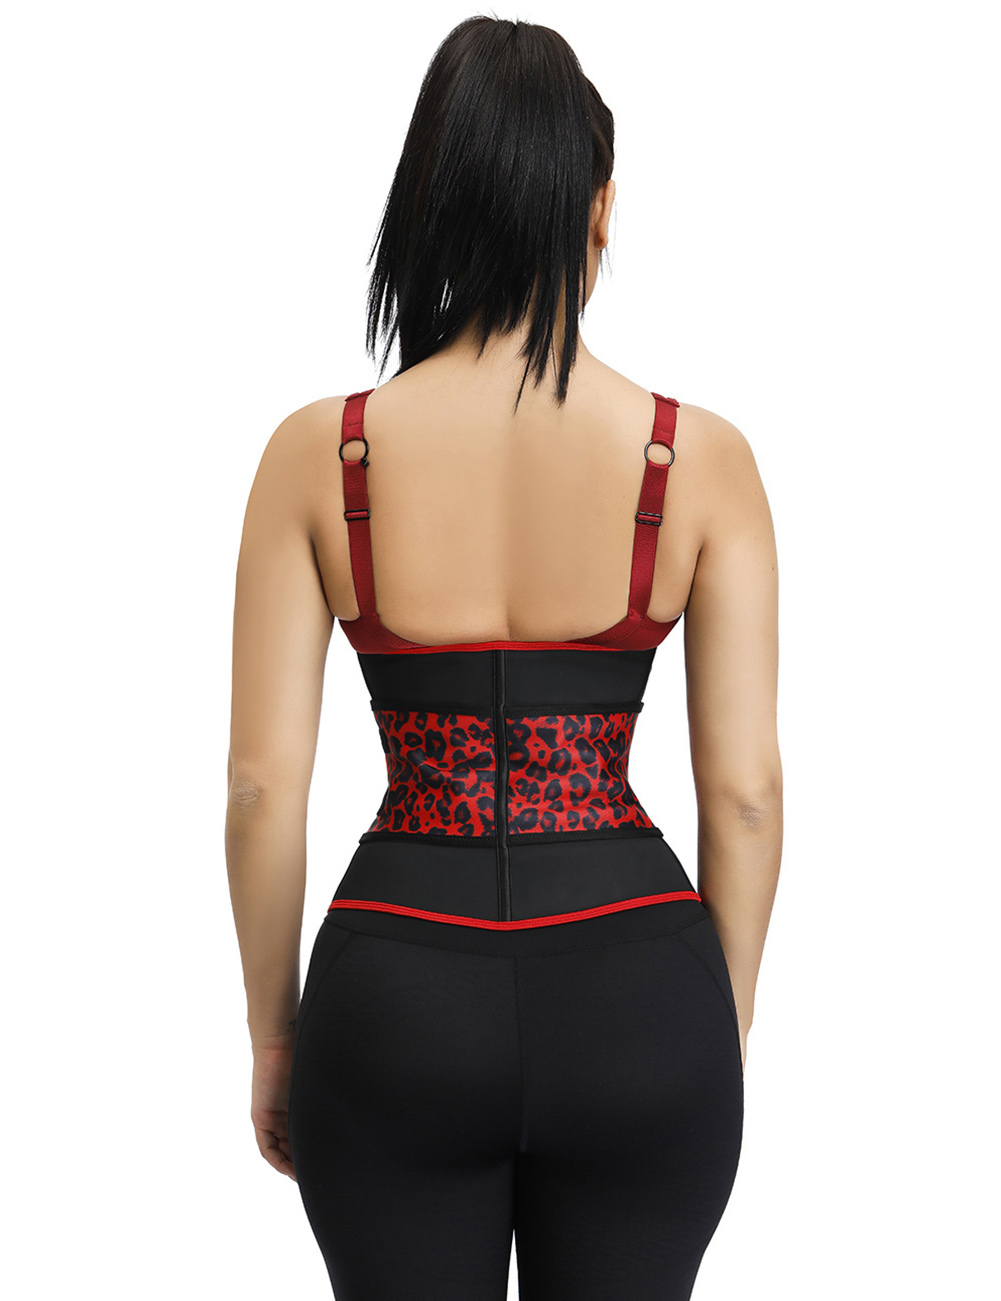 //cdn.affectcloud.com/hexinfashion/upload/imgs/SHAPEWEAR/Waist_Trainer/B195090-M01/B195090-M01-201911265ddc8ffacb51d.JPG